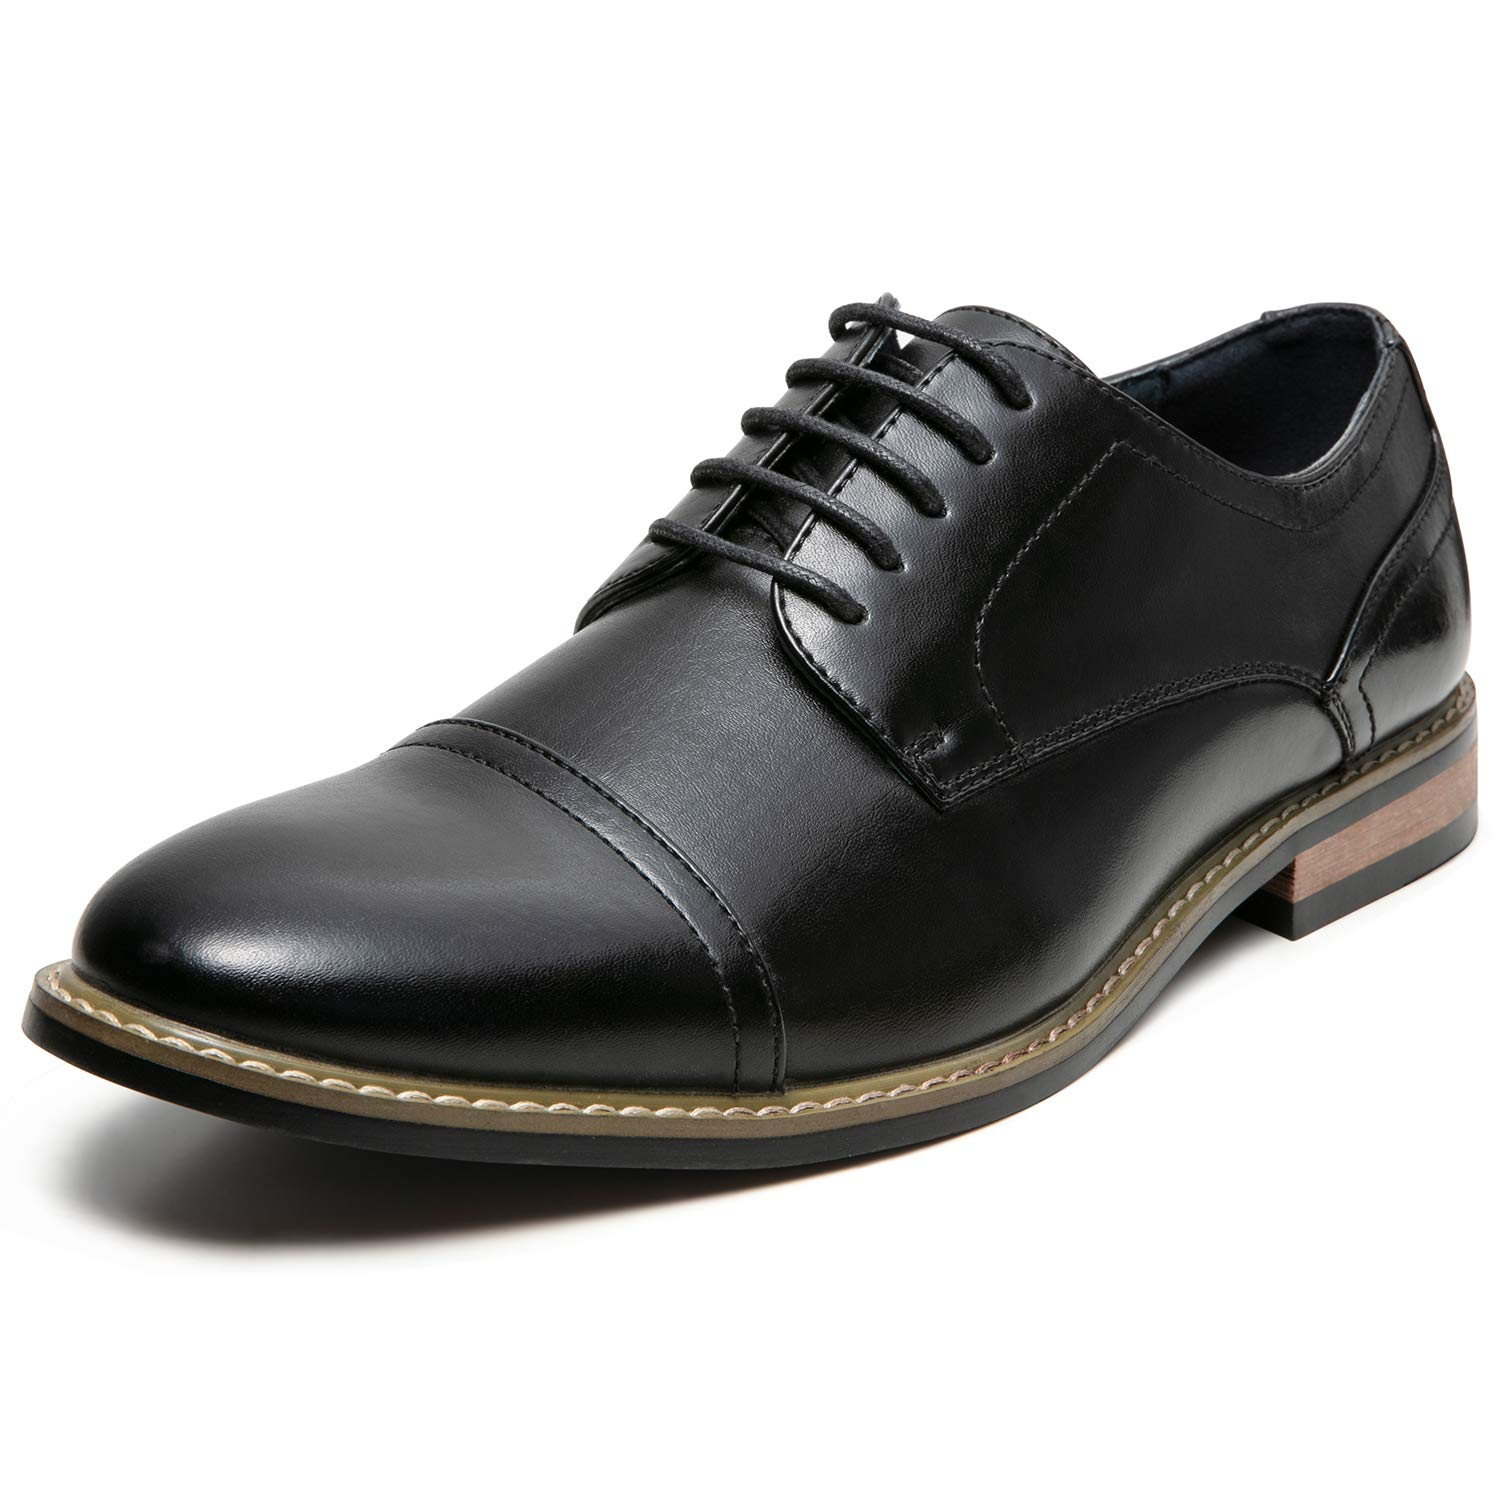 Men's Oxford Classic Cap Toe Dress Shoes Modern Lace up Leather Lined Formal Shoes for Men (2.5 M US, Black2)